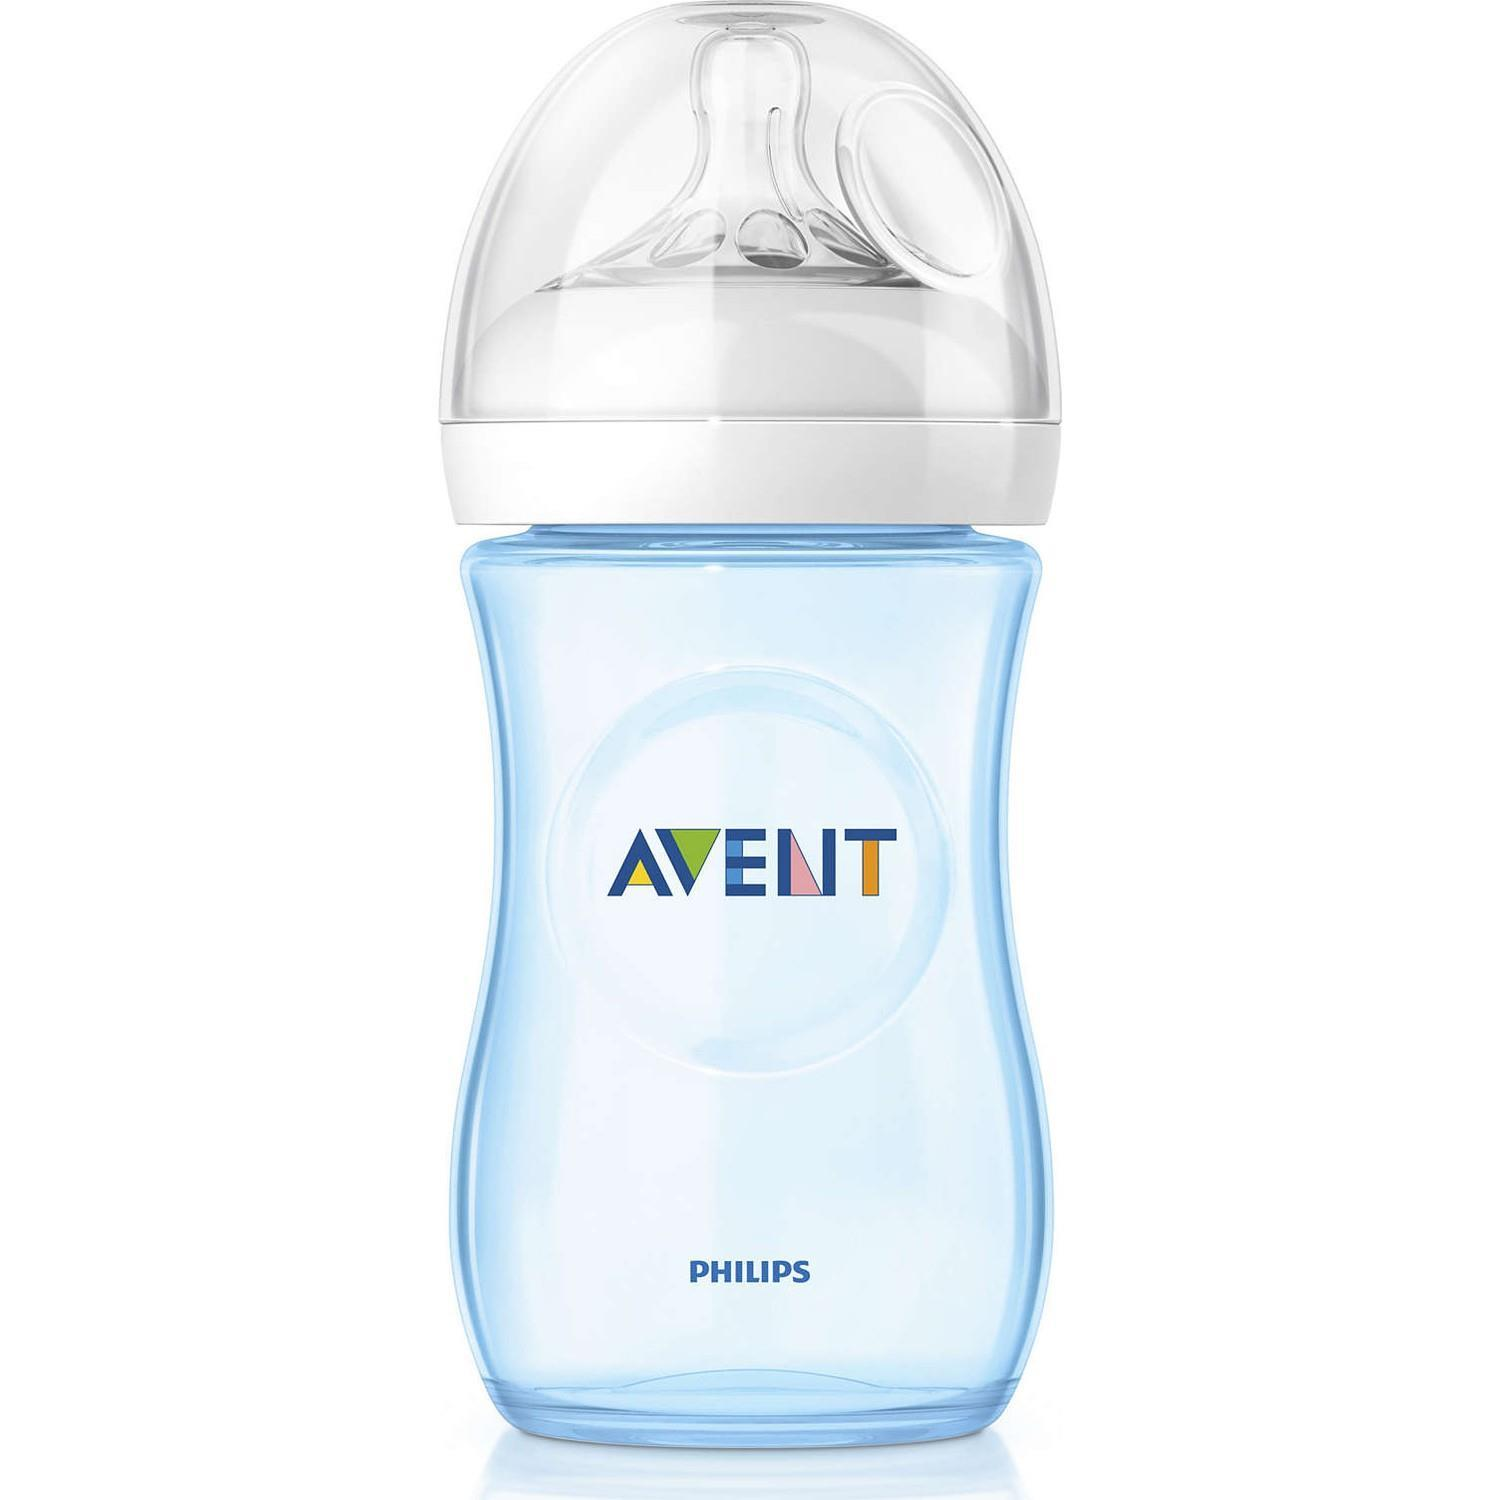 Philips Avent Natural Pp Biberon 260 Ml Mavi 53190 - Philips Avent Natural Pp Biberon 260 Ml Mavi